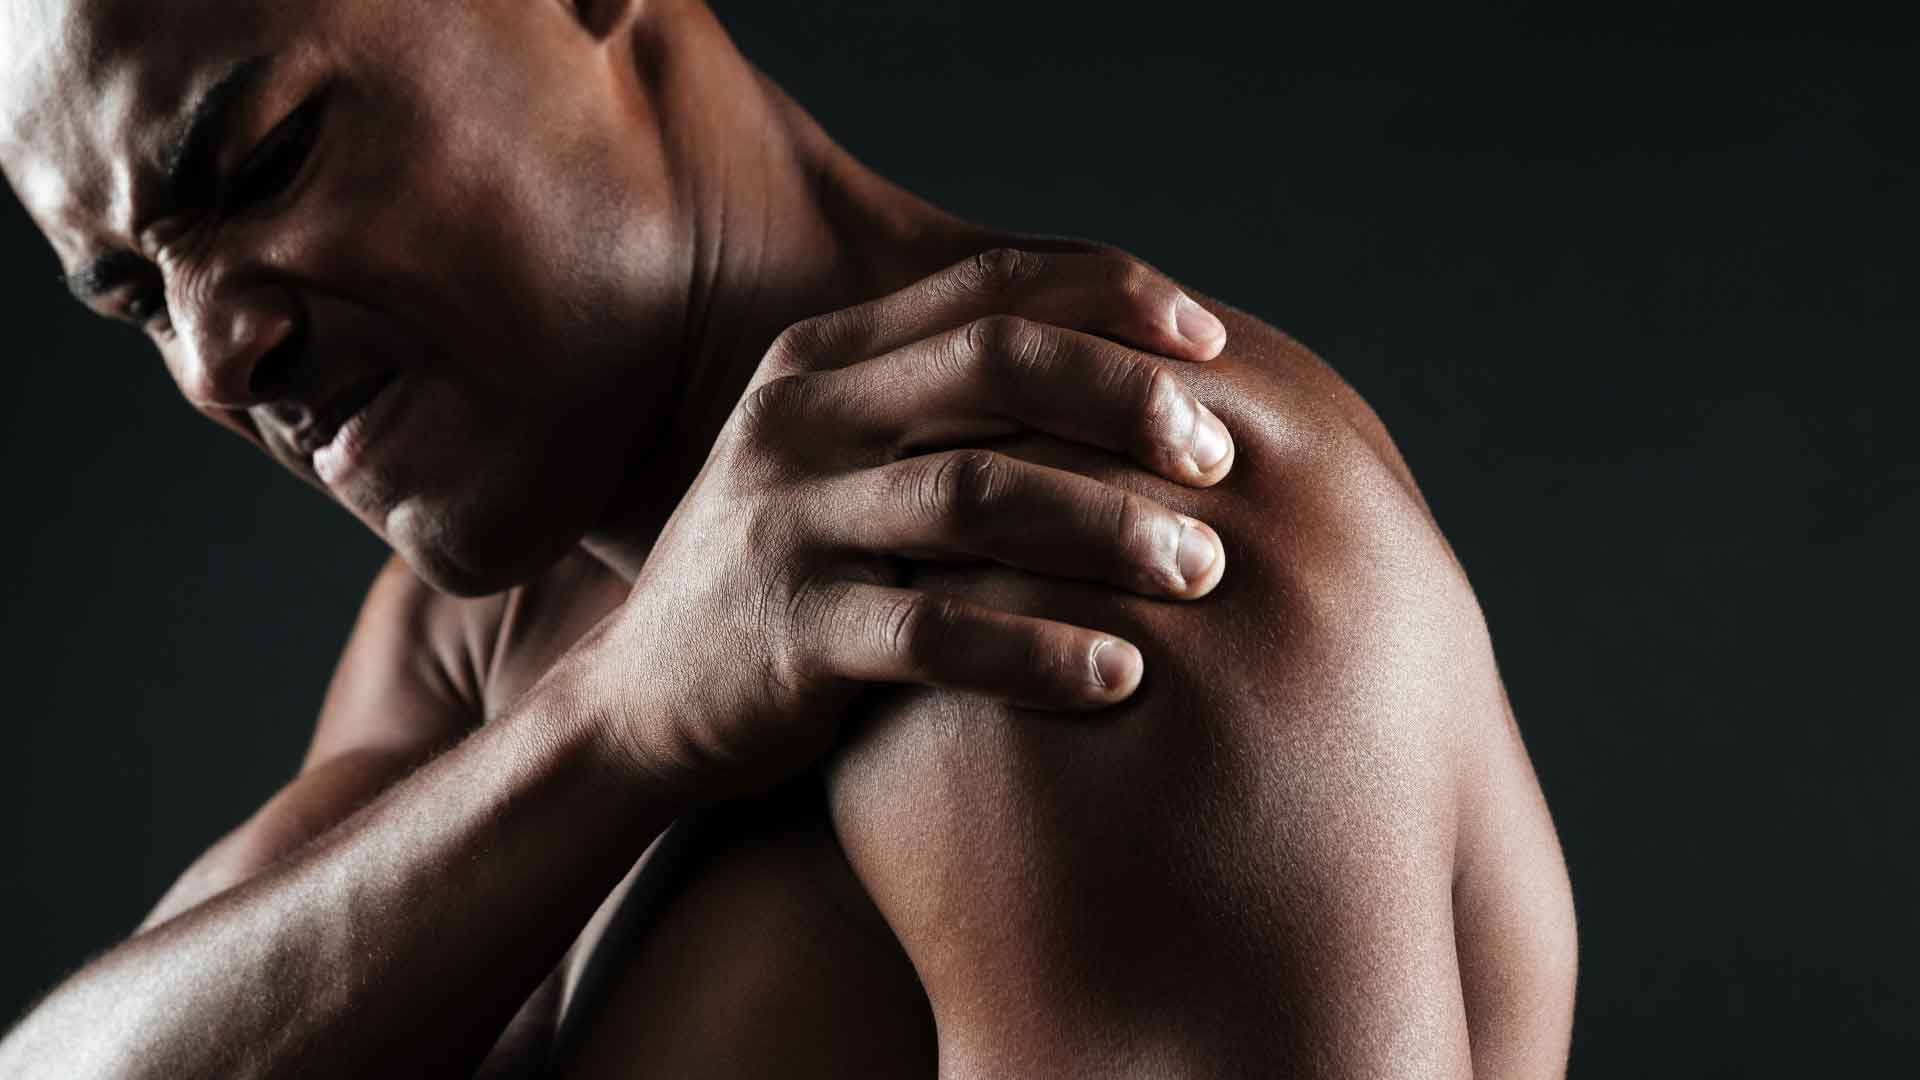 shoulder impingement exercises to avoid